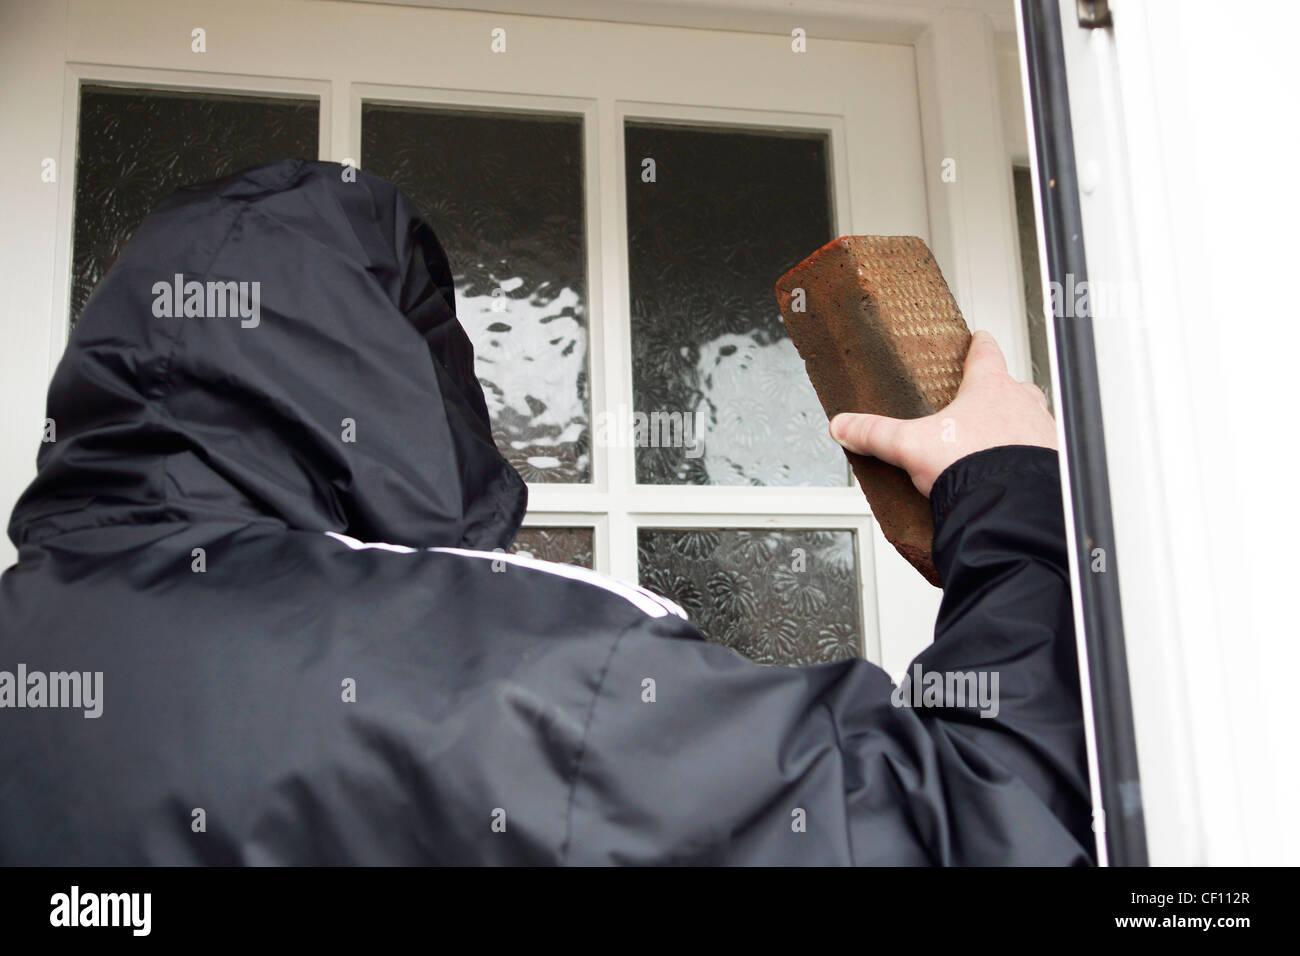 Undesirable character rogue hoodie smashing a brick through a glass window pane MODEL RELEASED Stock Photo